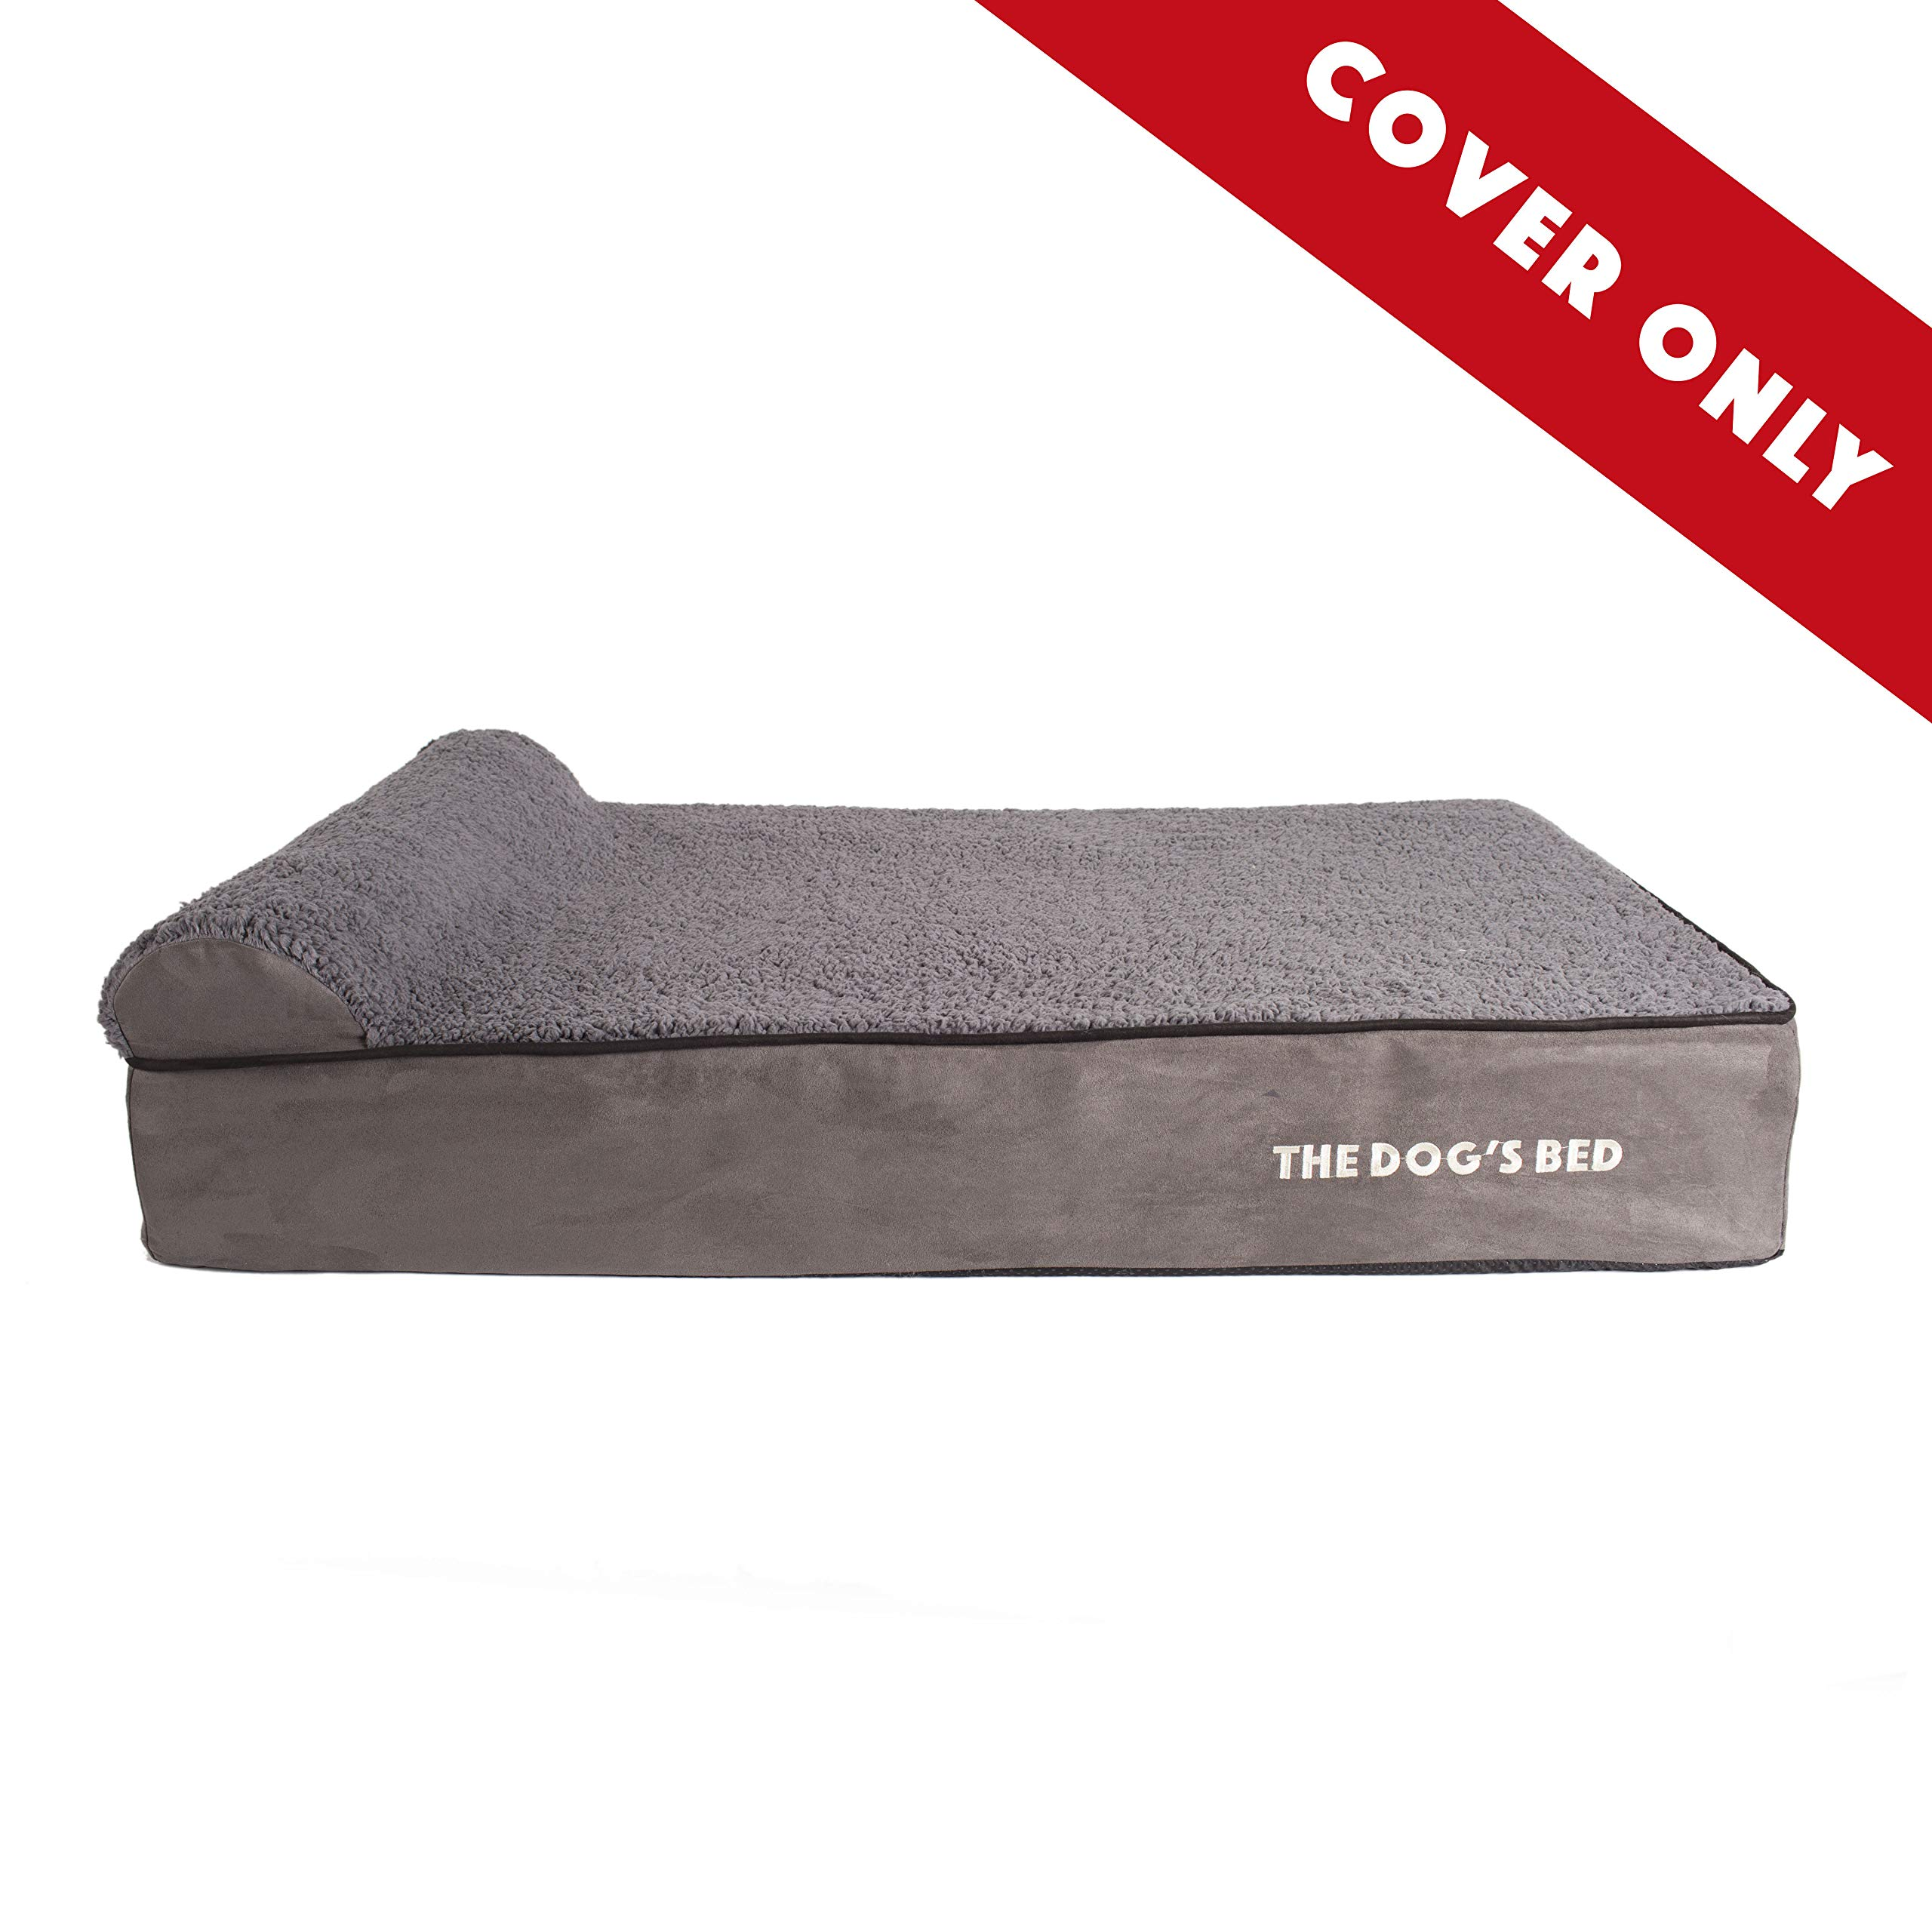 Replacement Outer Cover (Cover ONLY - NO Bed) for The Dog's Bed Orthopedic Memory Foam Dog Bed. Washable Quality Plush Fabric, Large 40'' x 25'' x 6'' (Grey Plush)